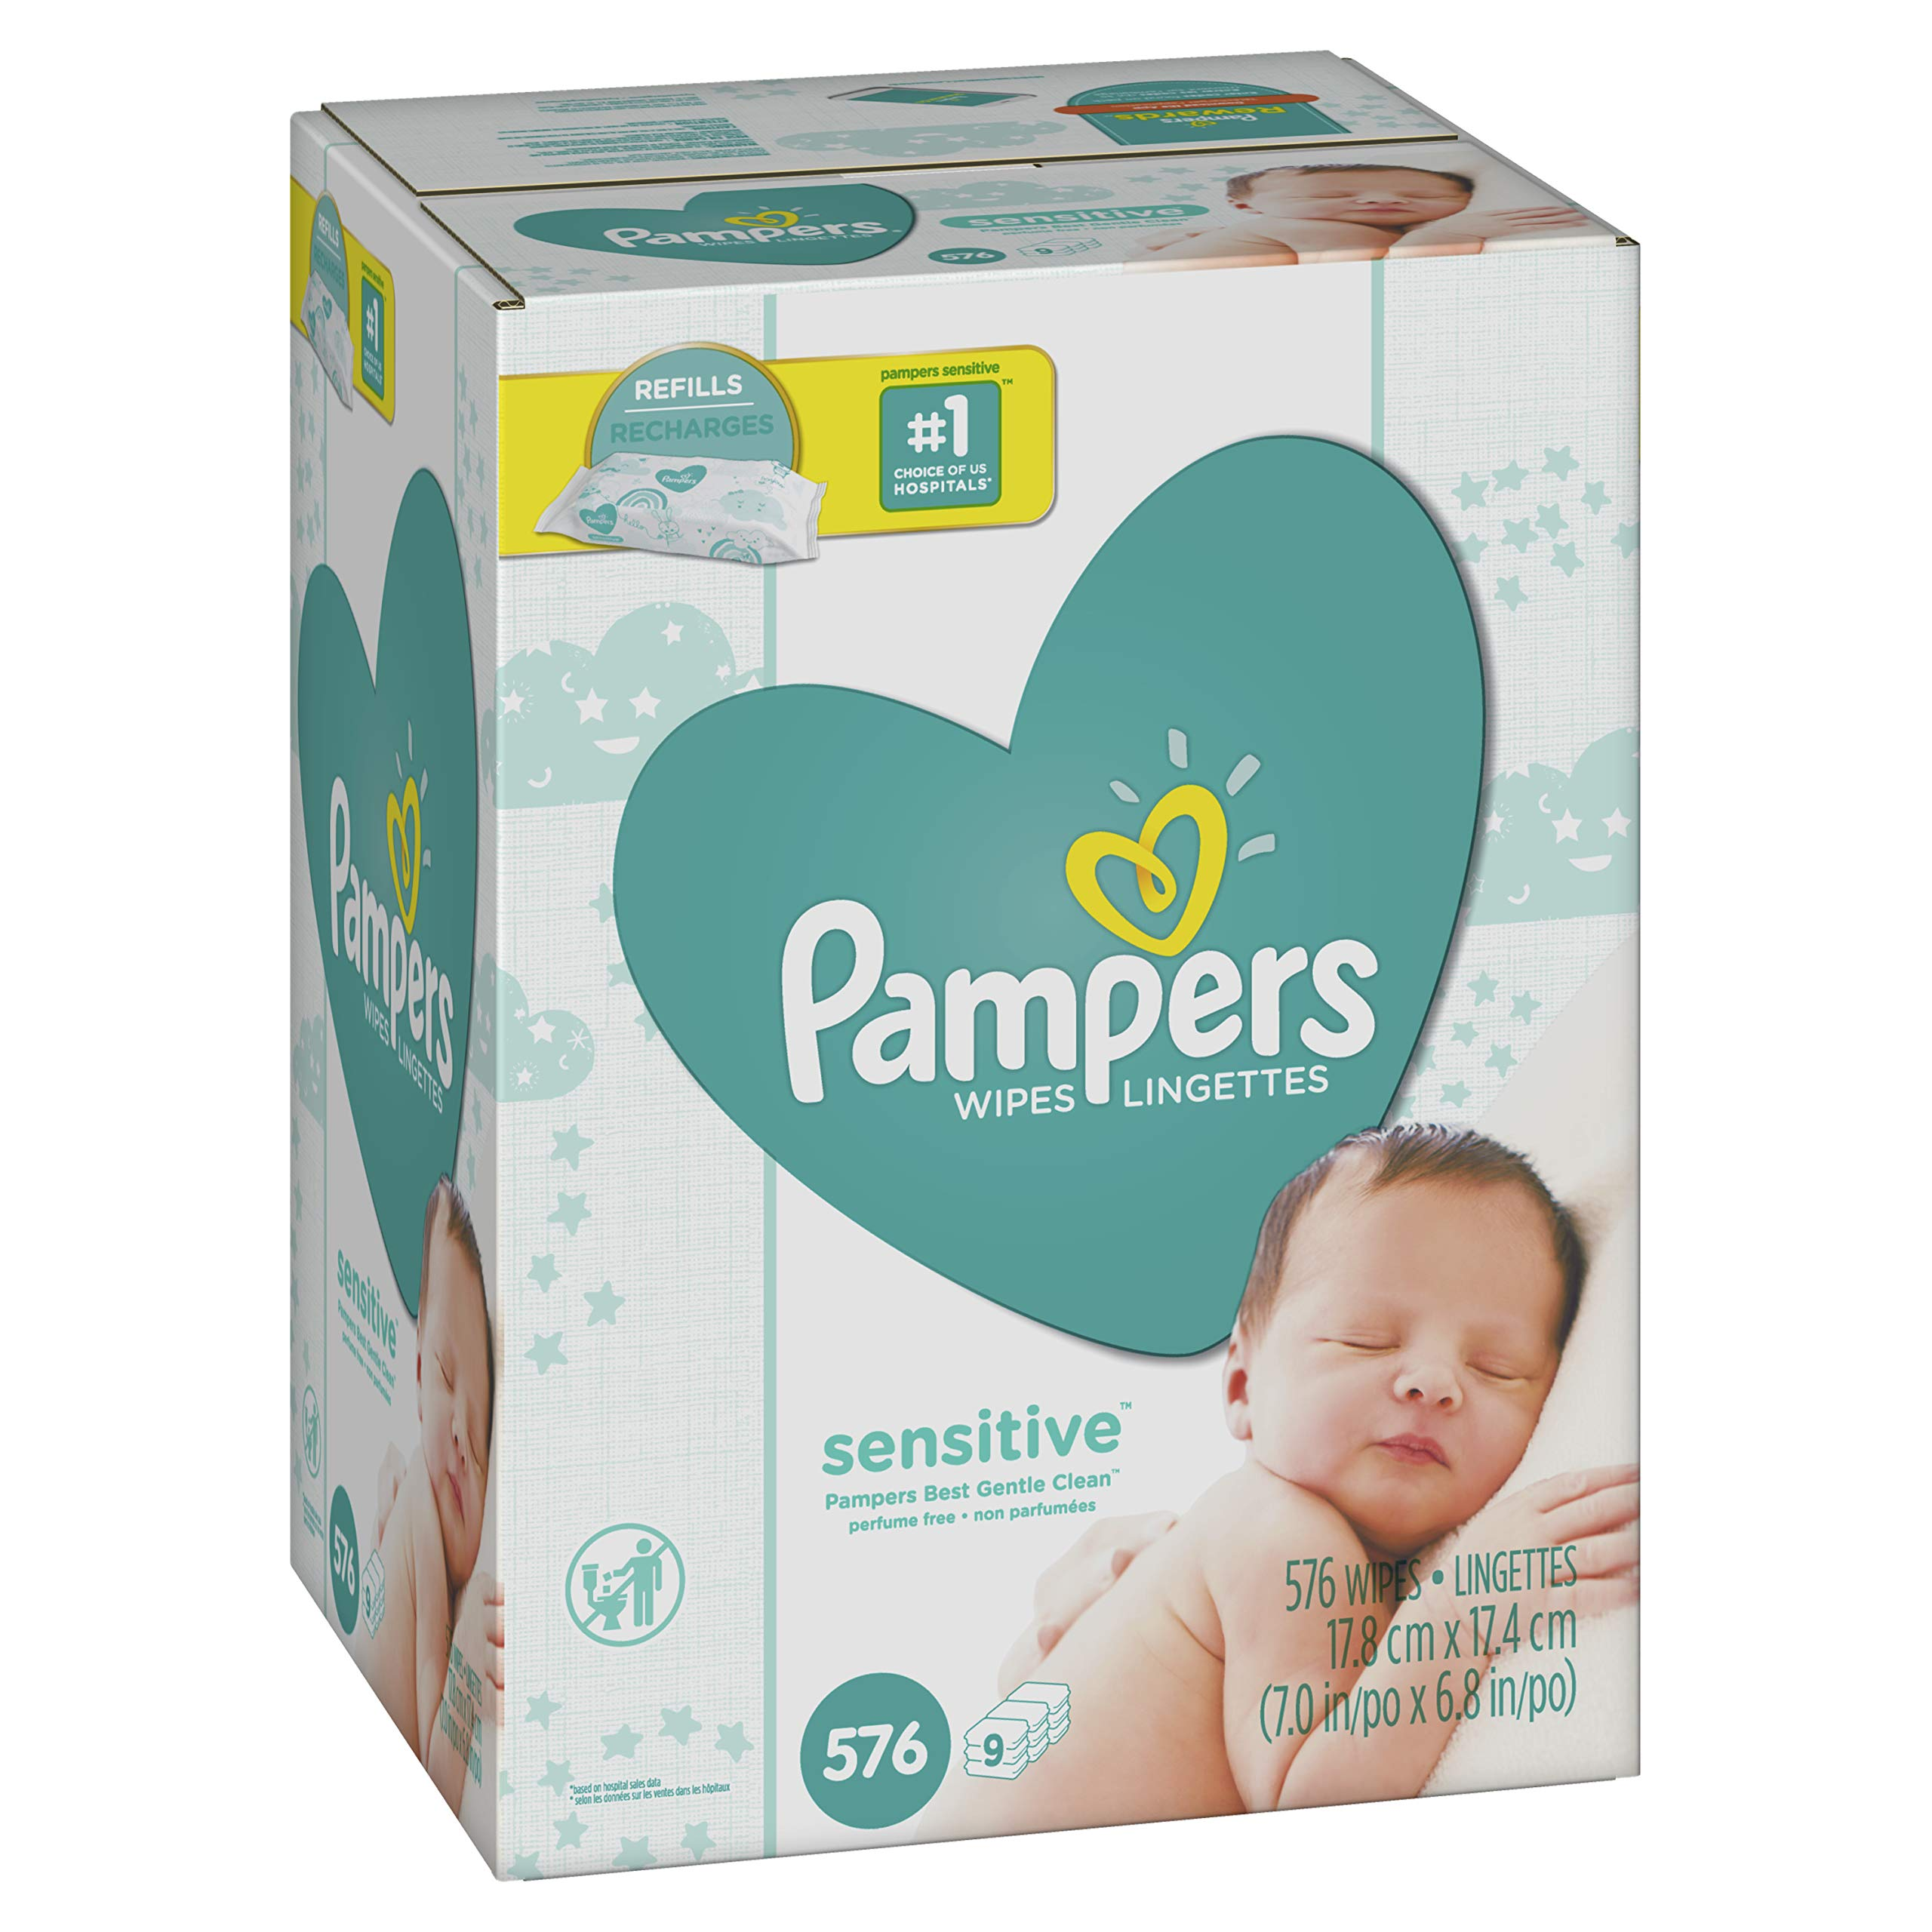 Pampers Sensitive Water-Based Baby Diaper Wipes, 9 Refill Packs for Dispenser Tub -